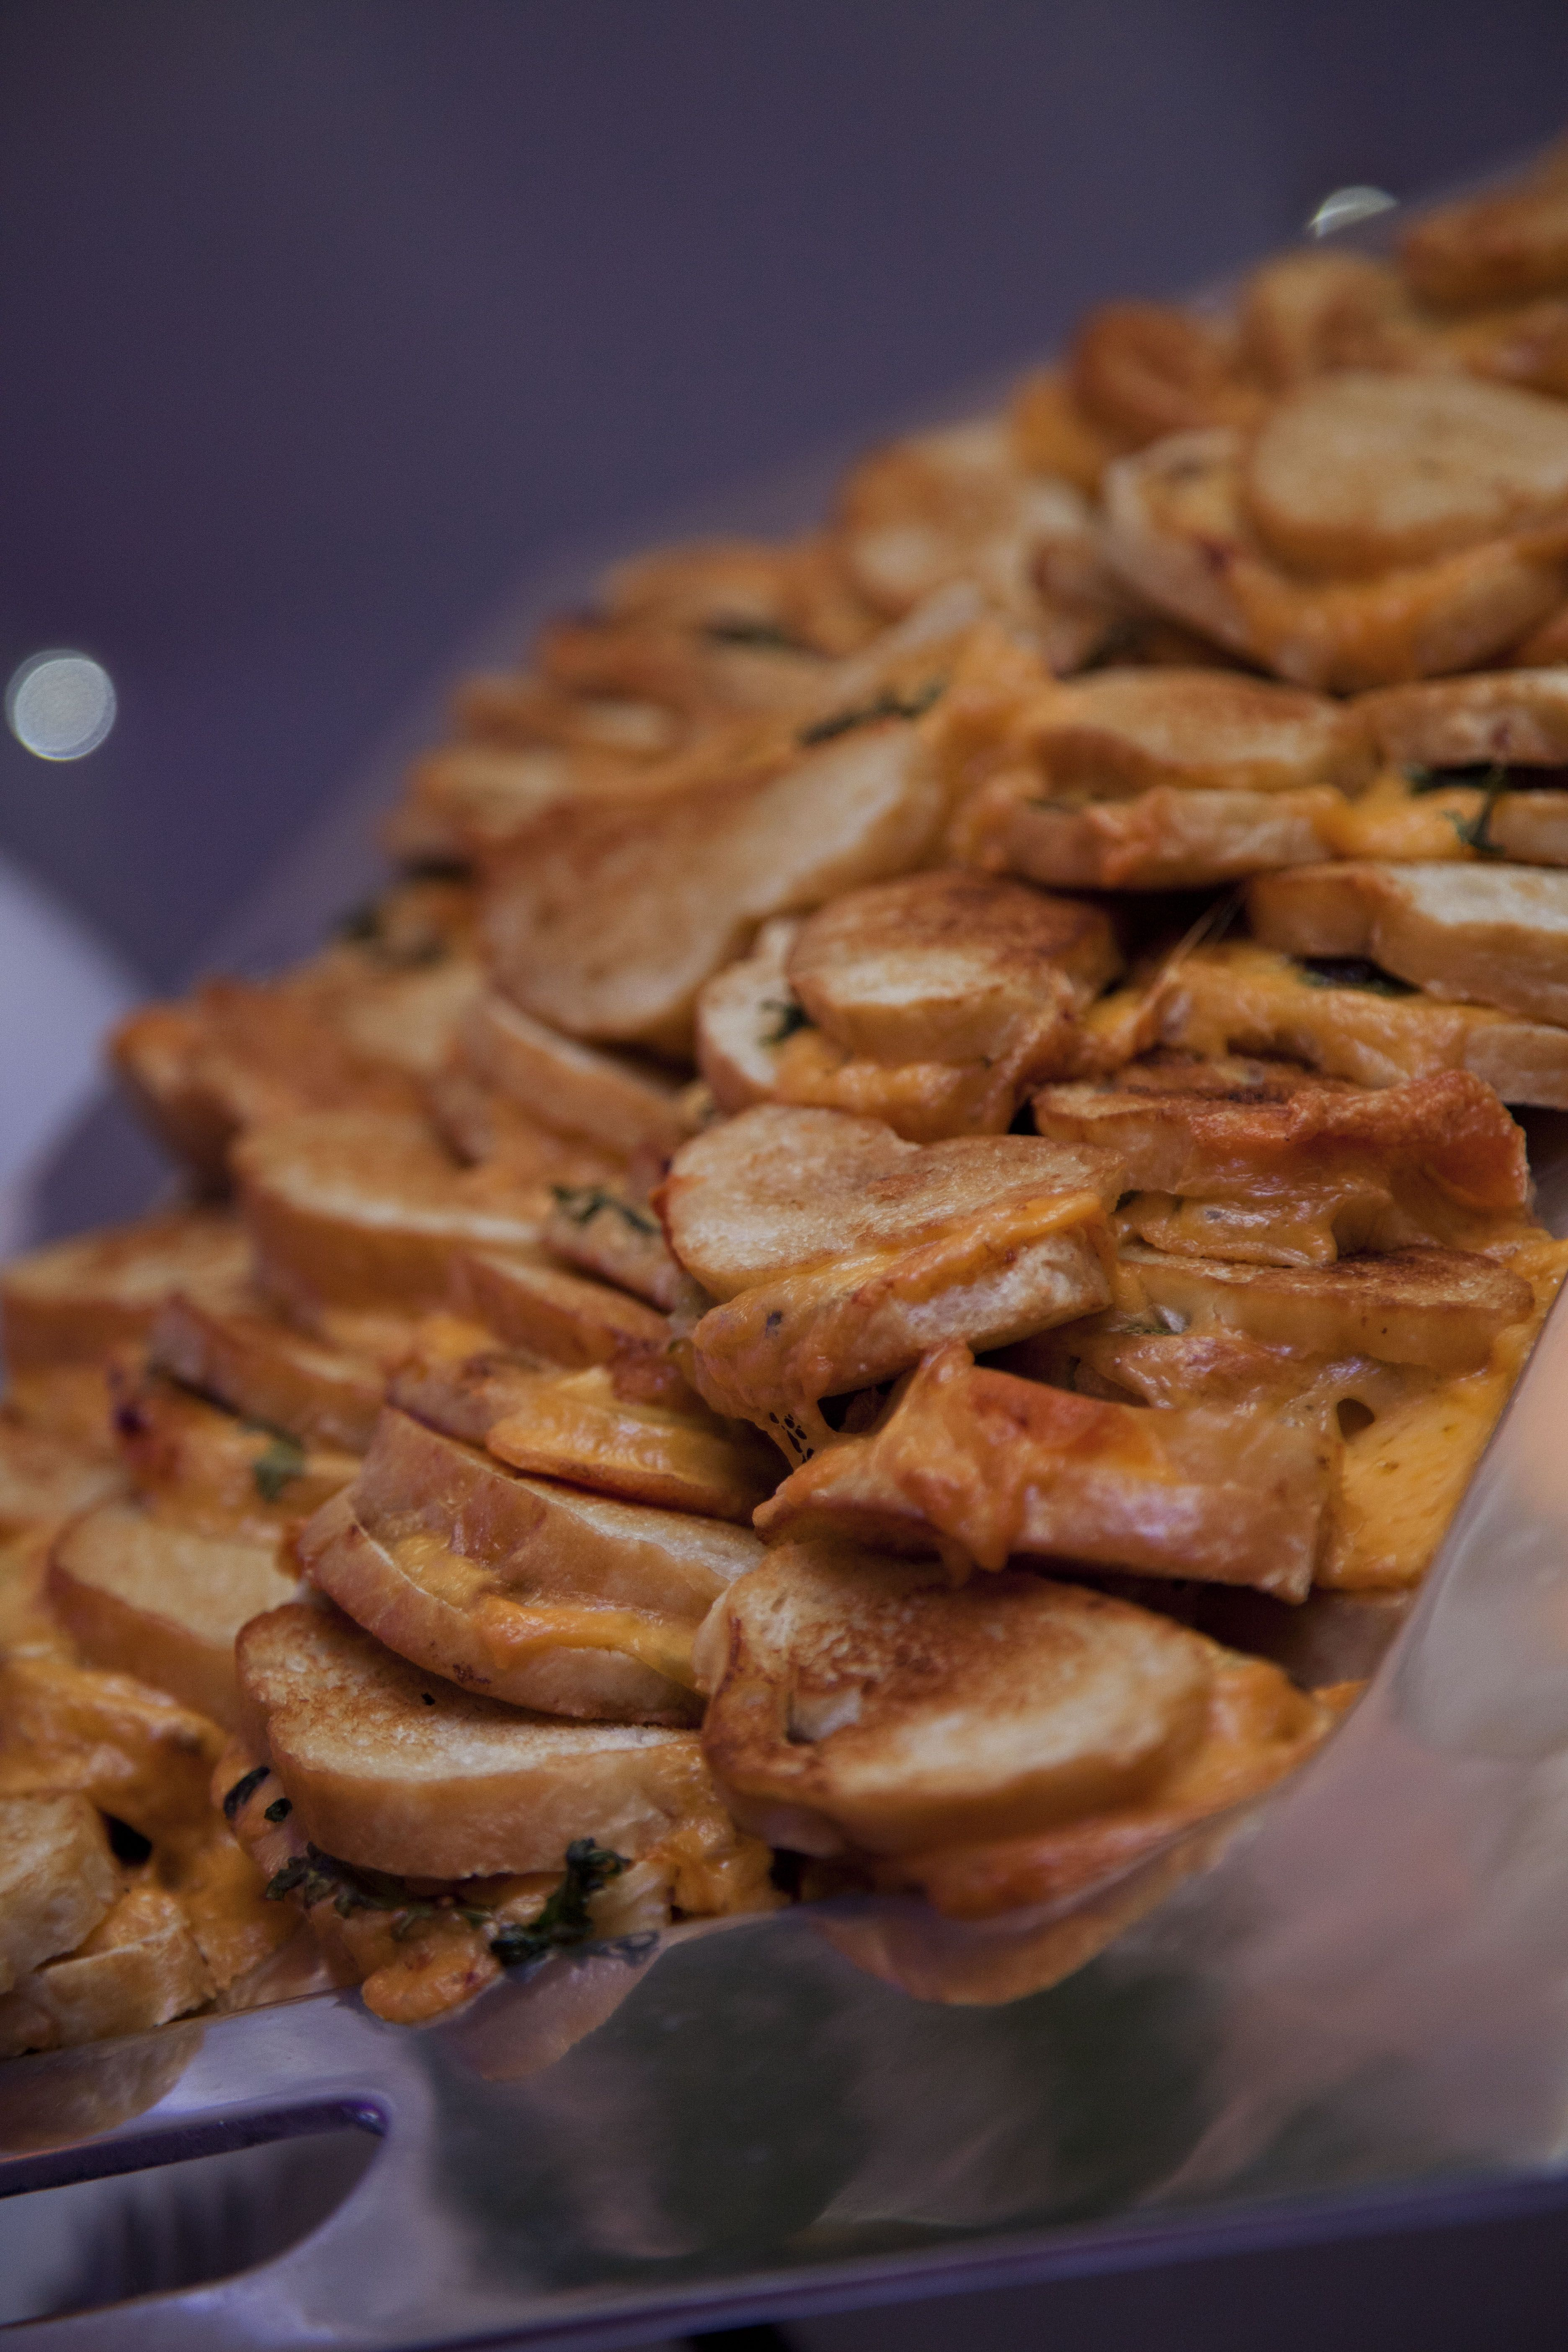 host a grilled cheese late night station at your wedding reception